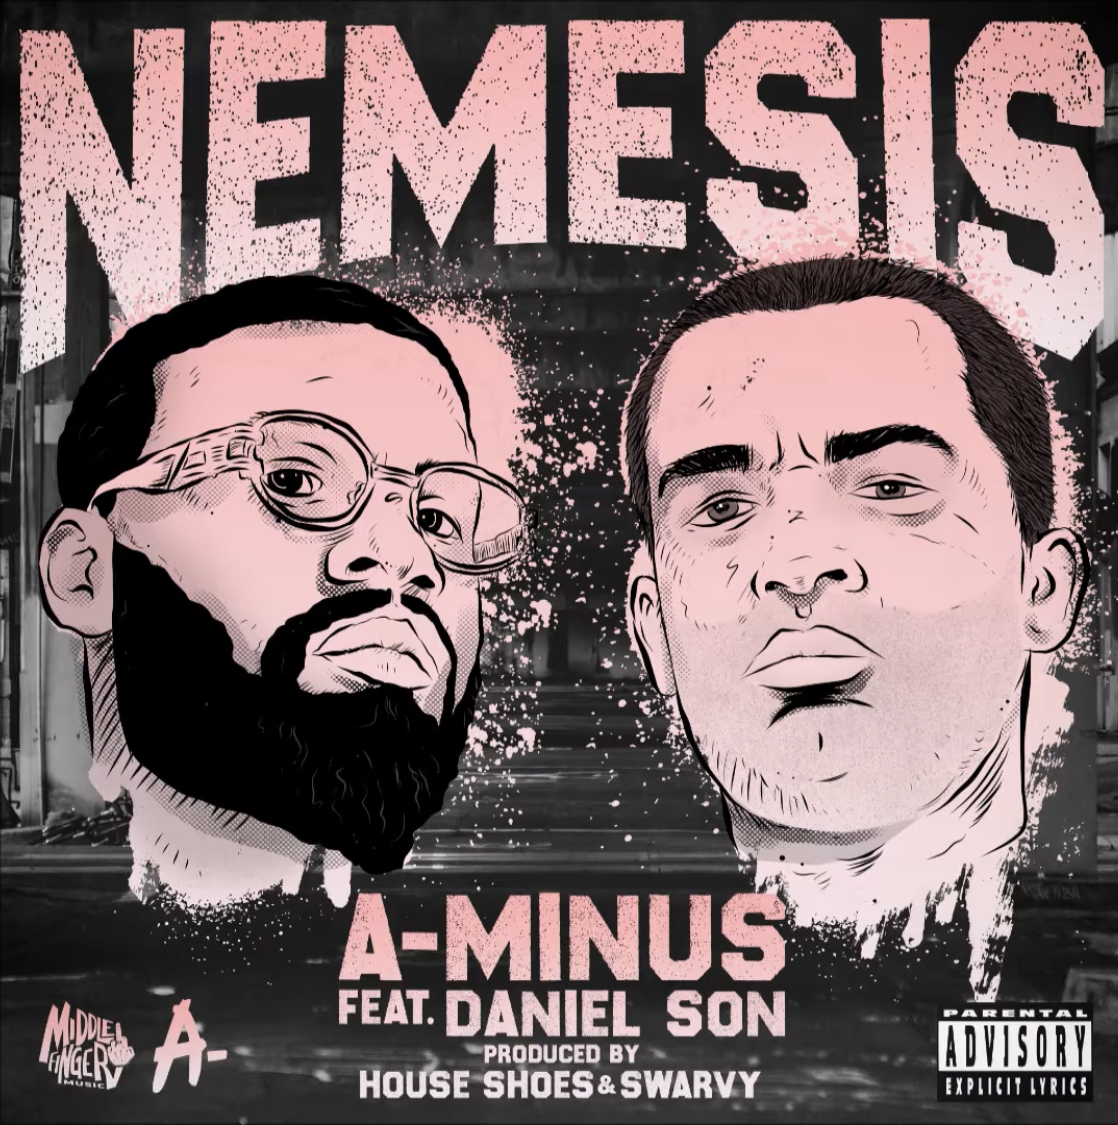 A-Minus - 'Nemesis' ft. Daniel Son (prod. House Shoes & Swarvy)